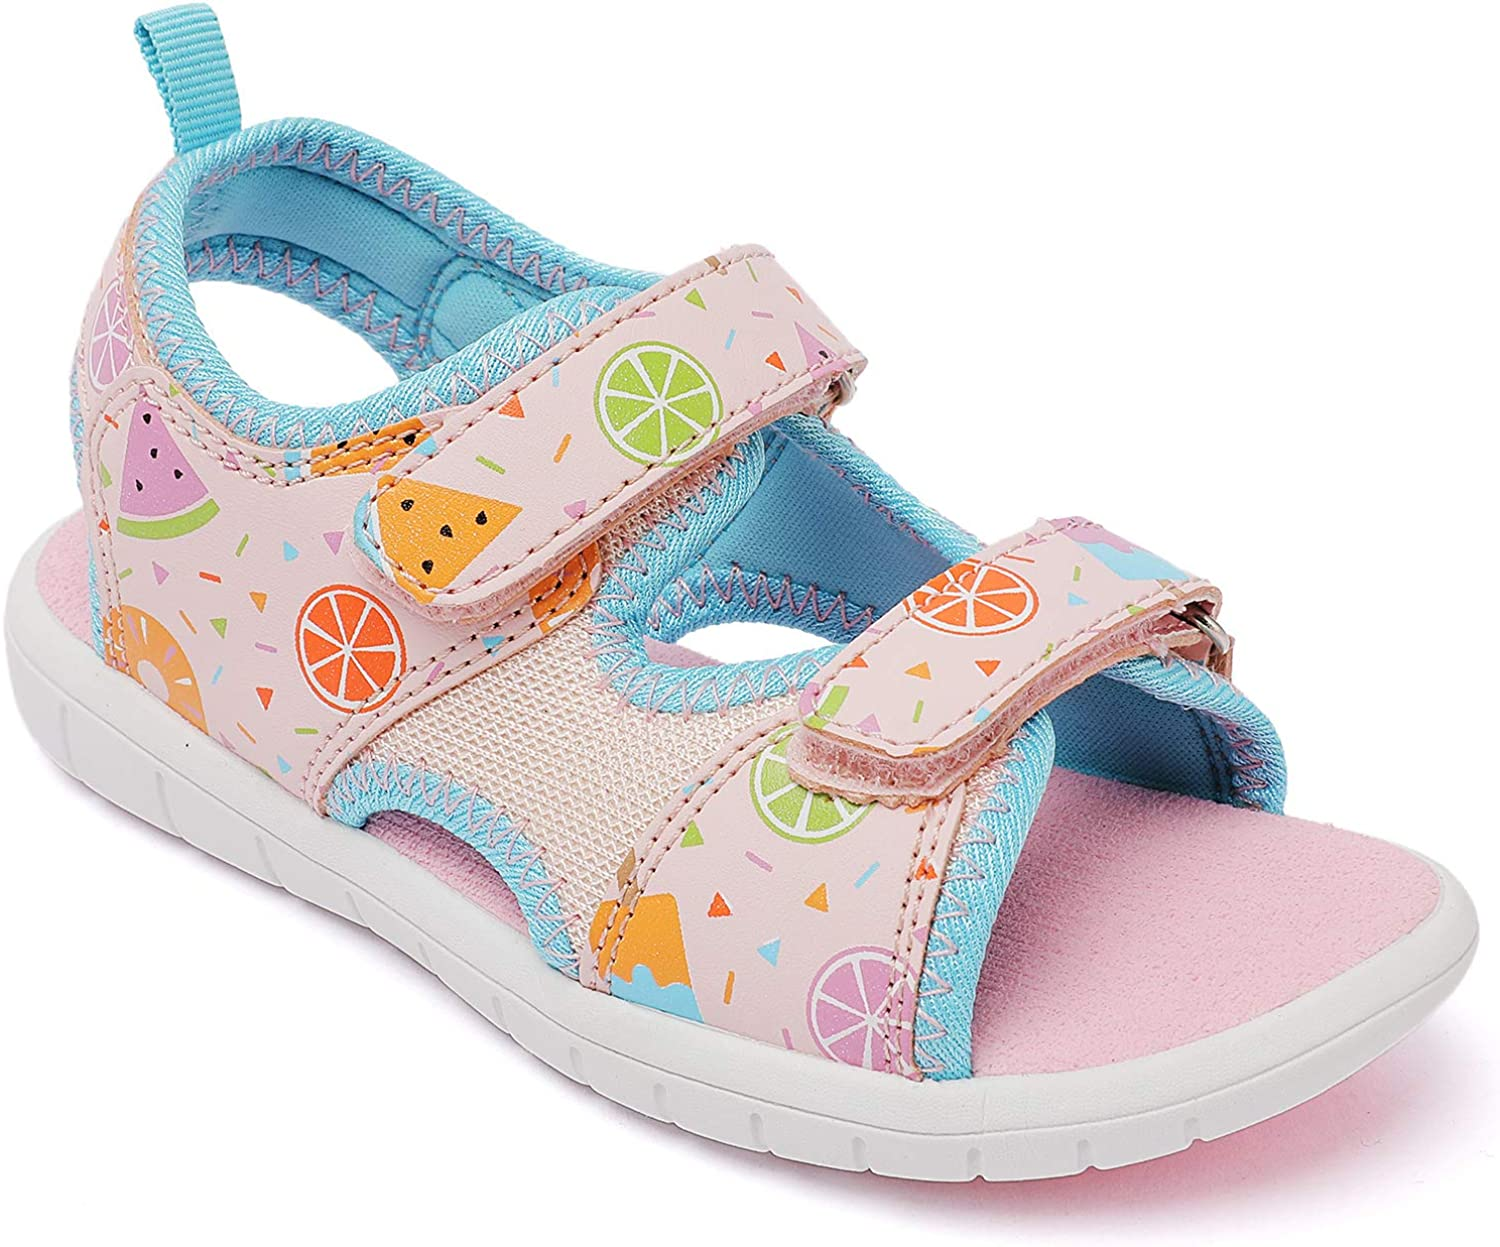 Veittes Toddler Daily bargain sale Kid's Sport Boy Girl Comfortable Sandals Clearance SALE Limited time